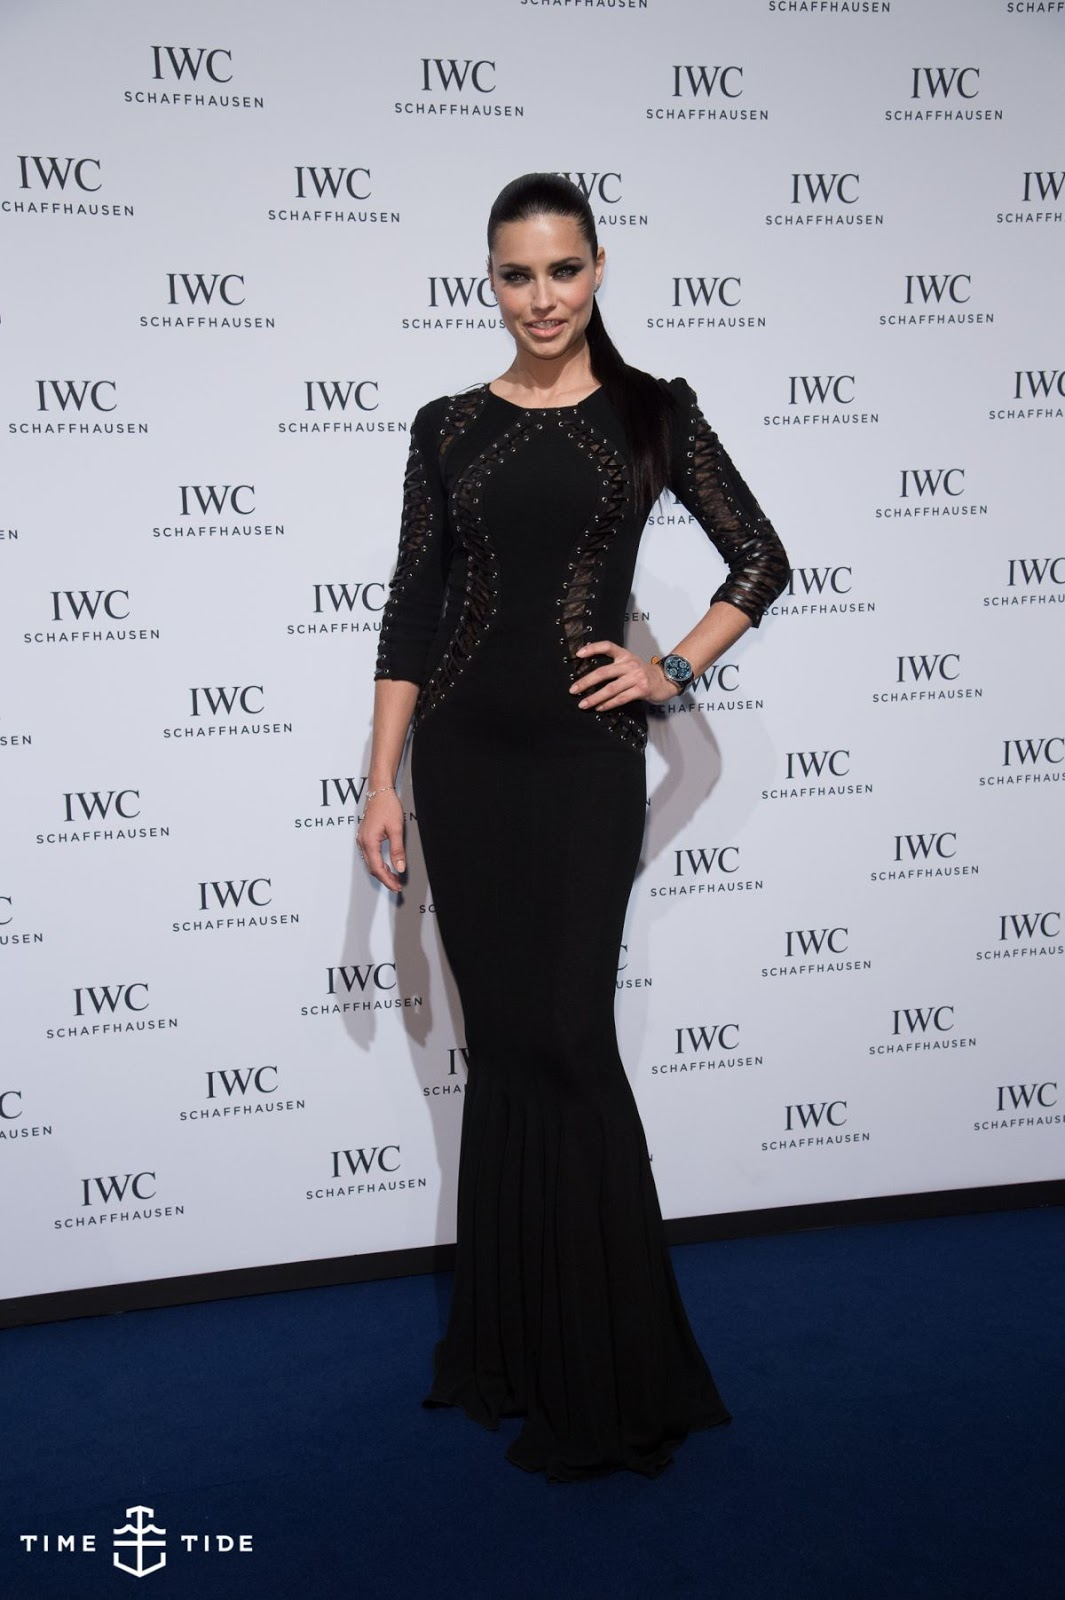 Victoria's Secret Fashion Show Model Adriana Lima with Smoky Eyes attend the IWC Gala Dinner in Geneva